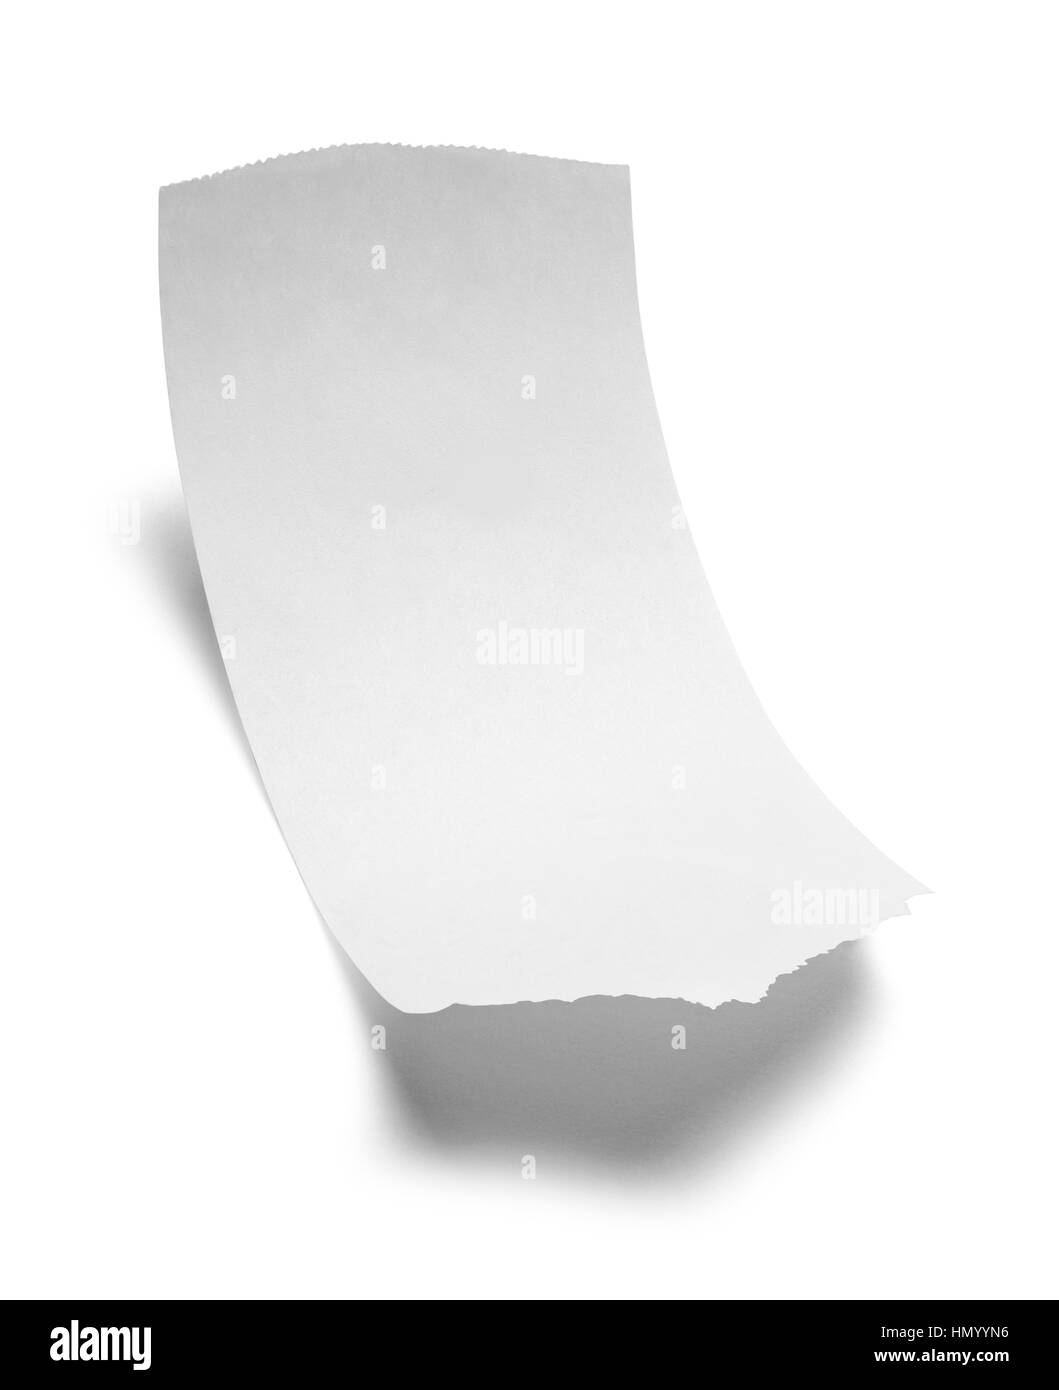 blank sales receipt paper isolated on white background stock photo